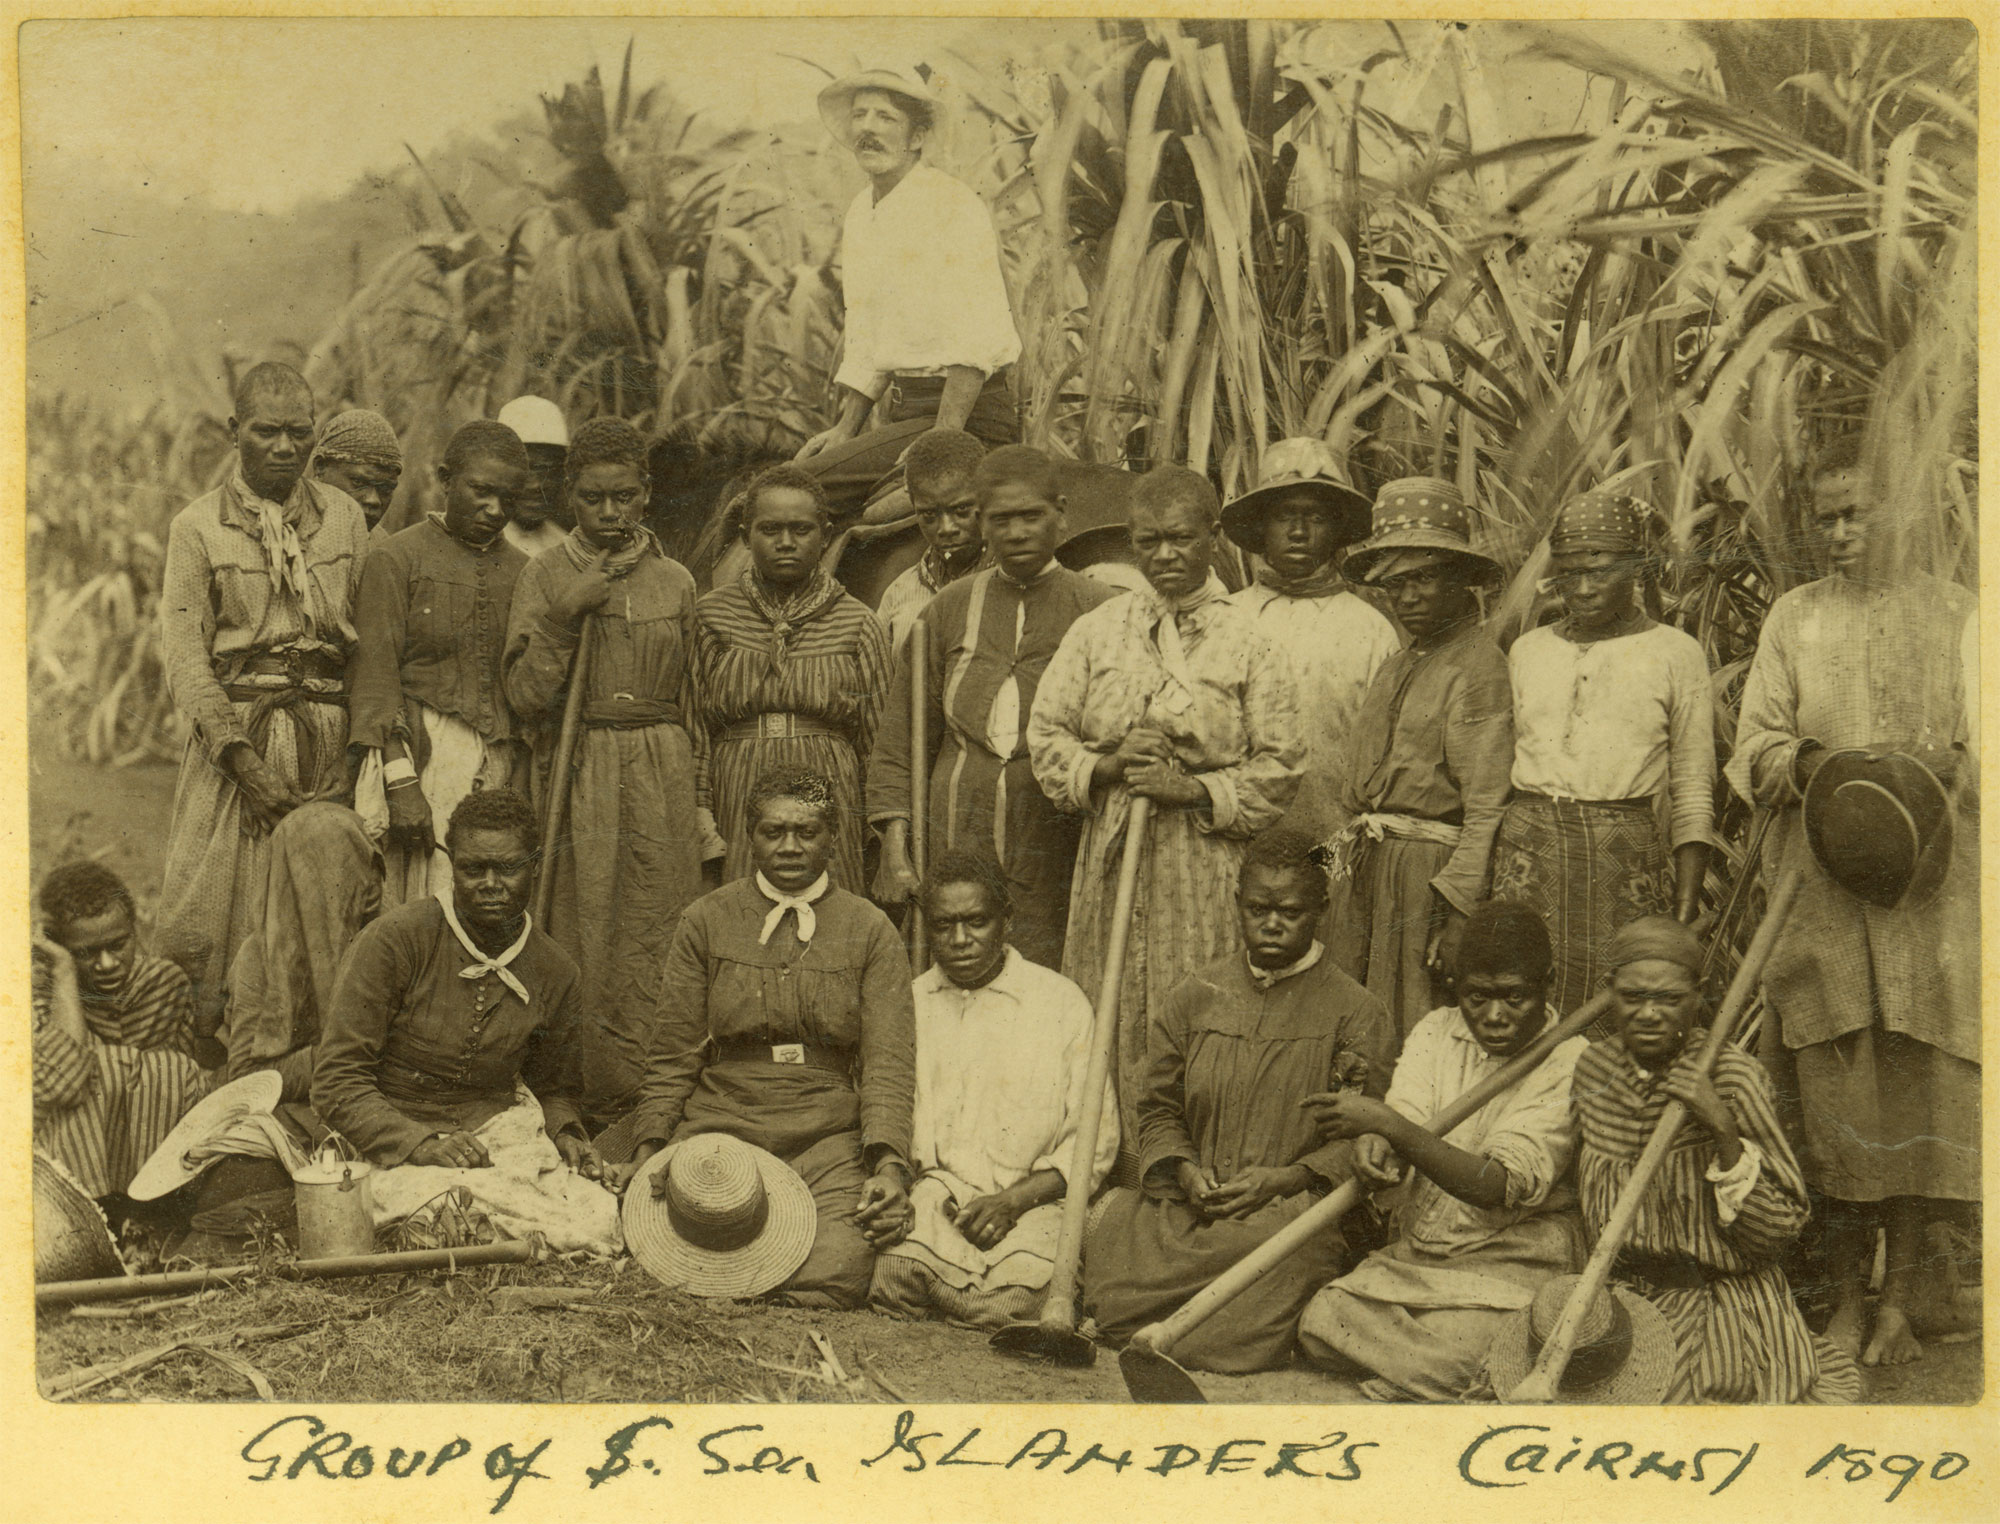 Group of South Sea Islander workers on a property in Cairns